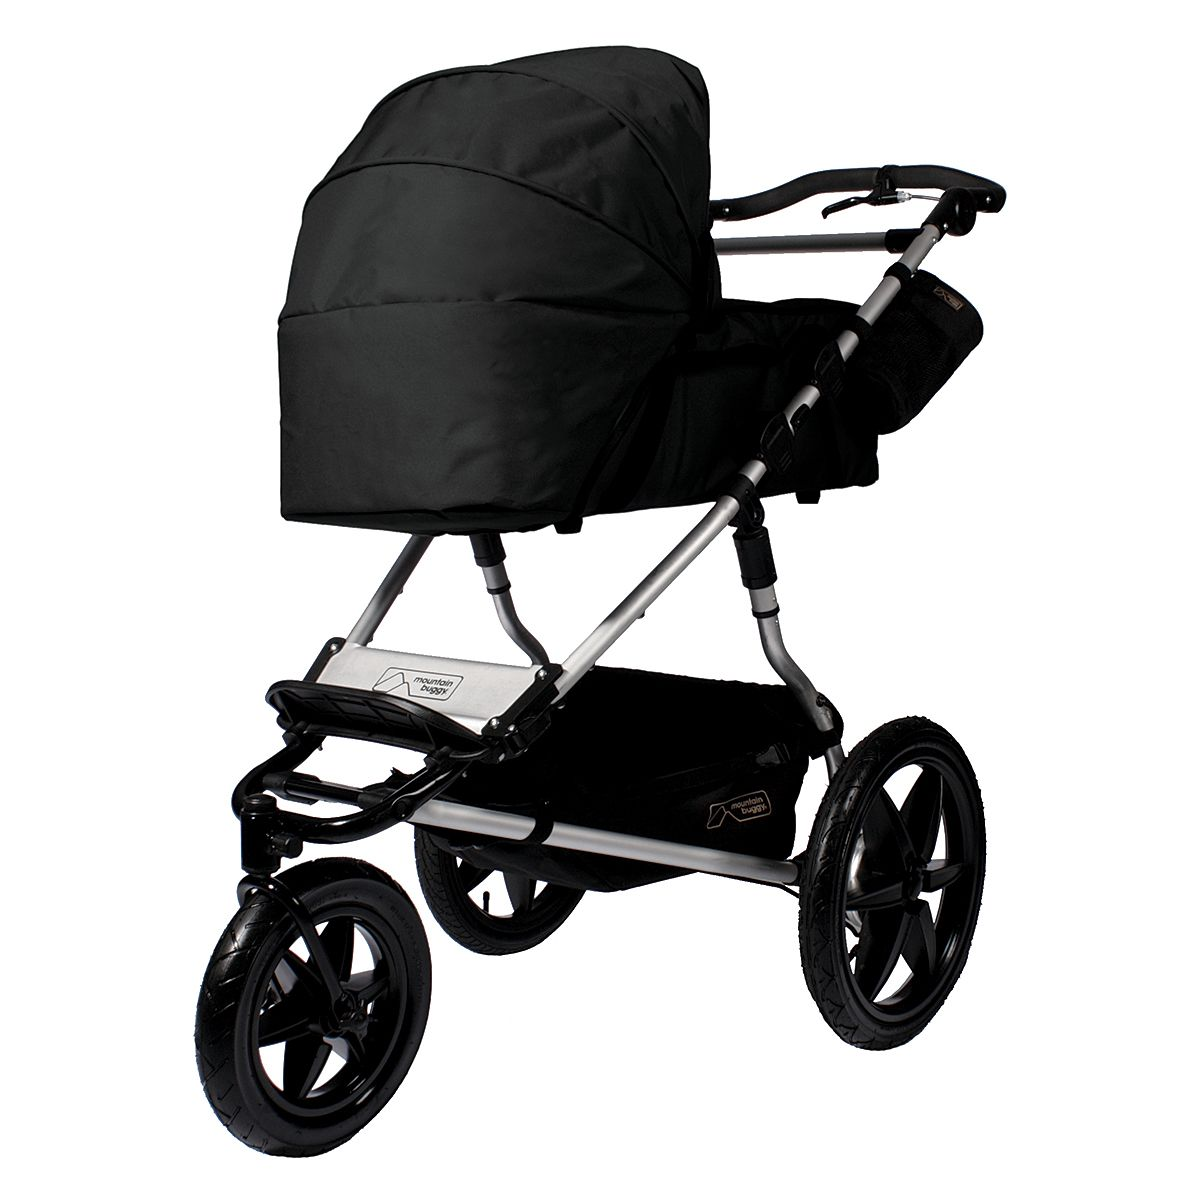 A Black Pram Style Carrycot Designed To Perfectly Fit The